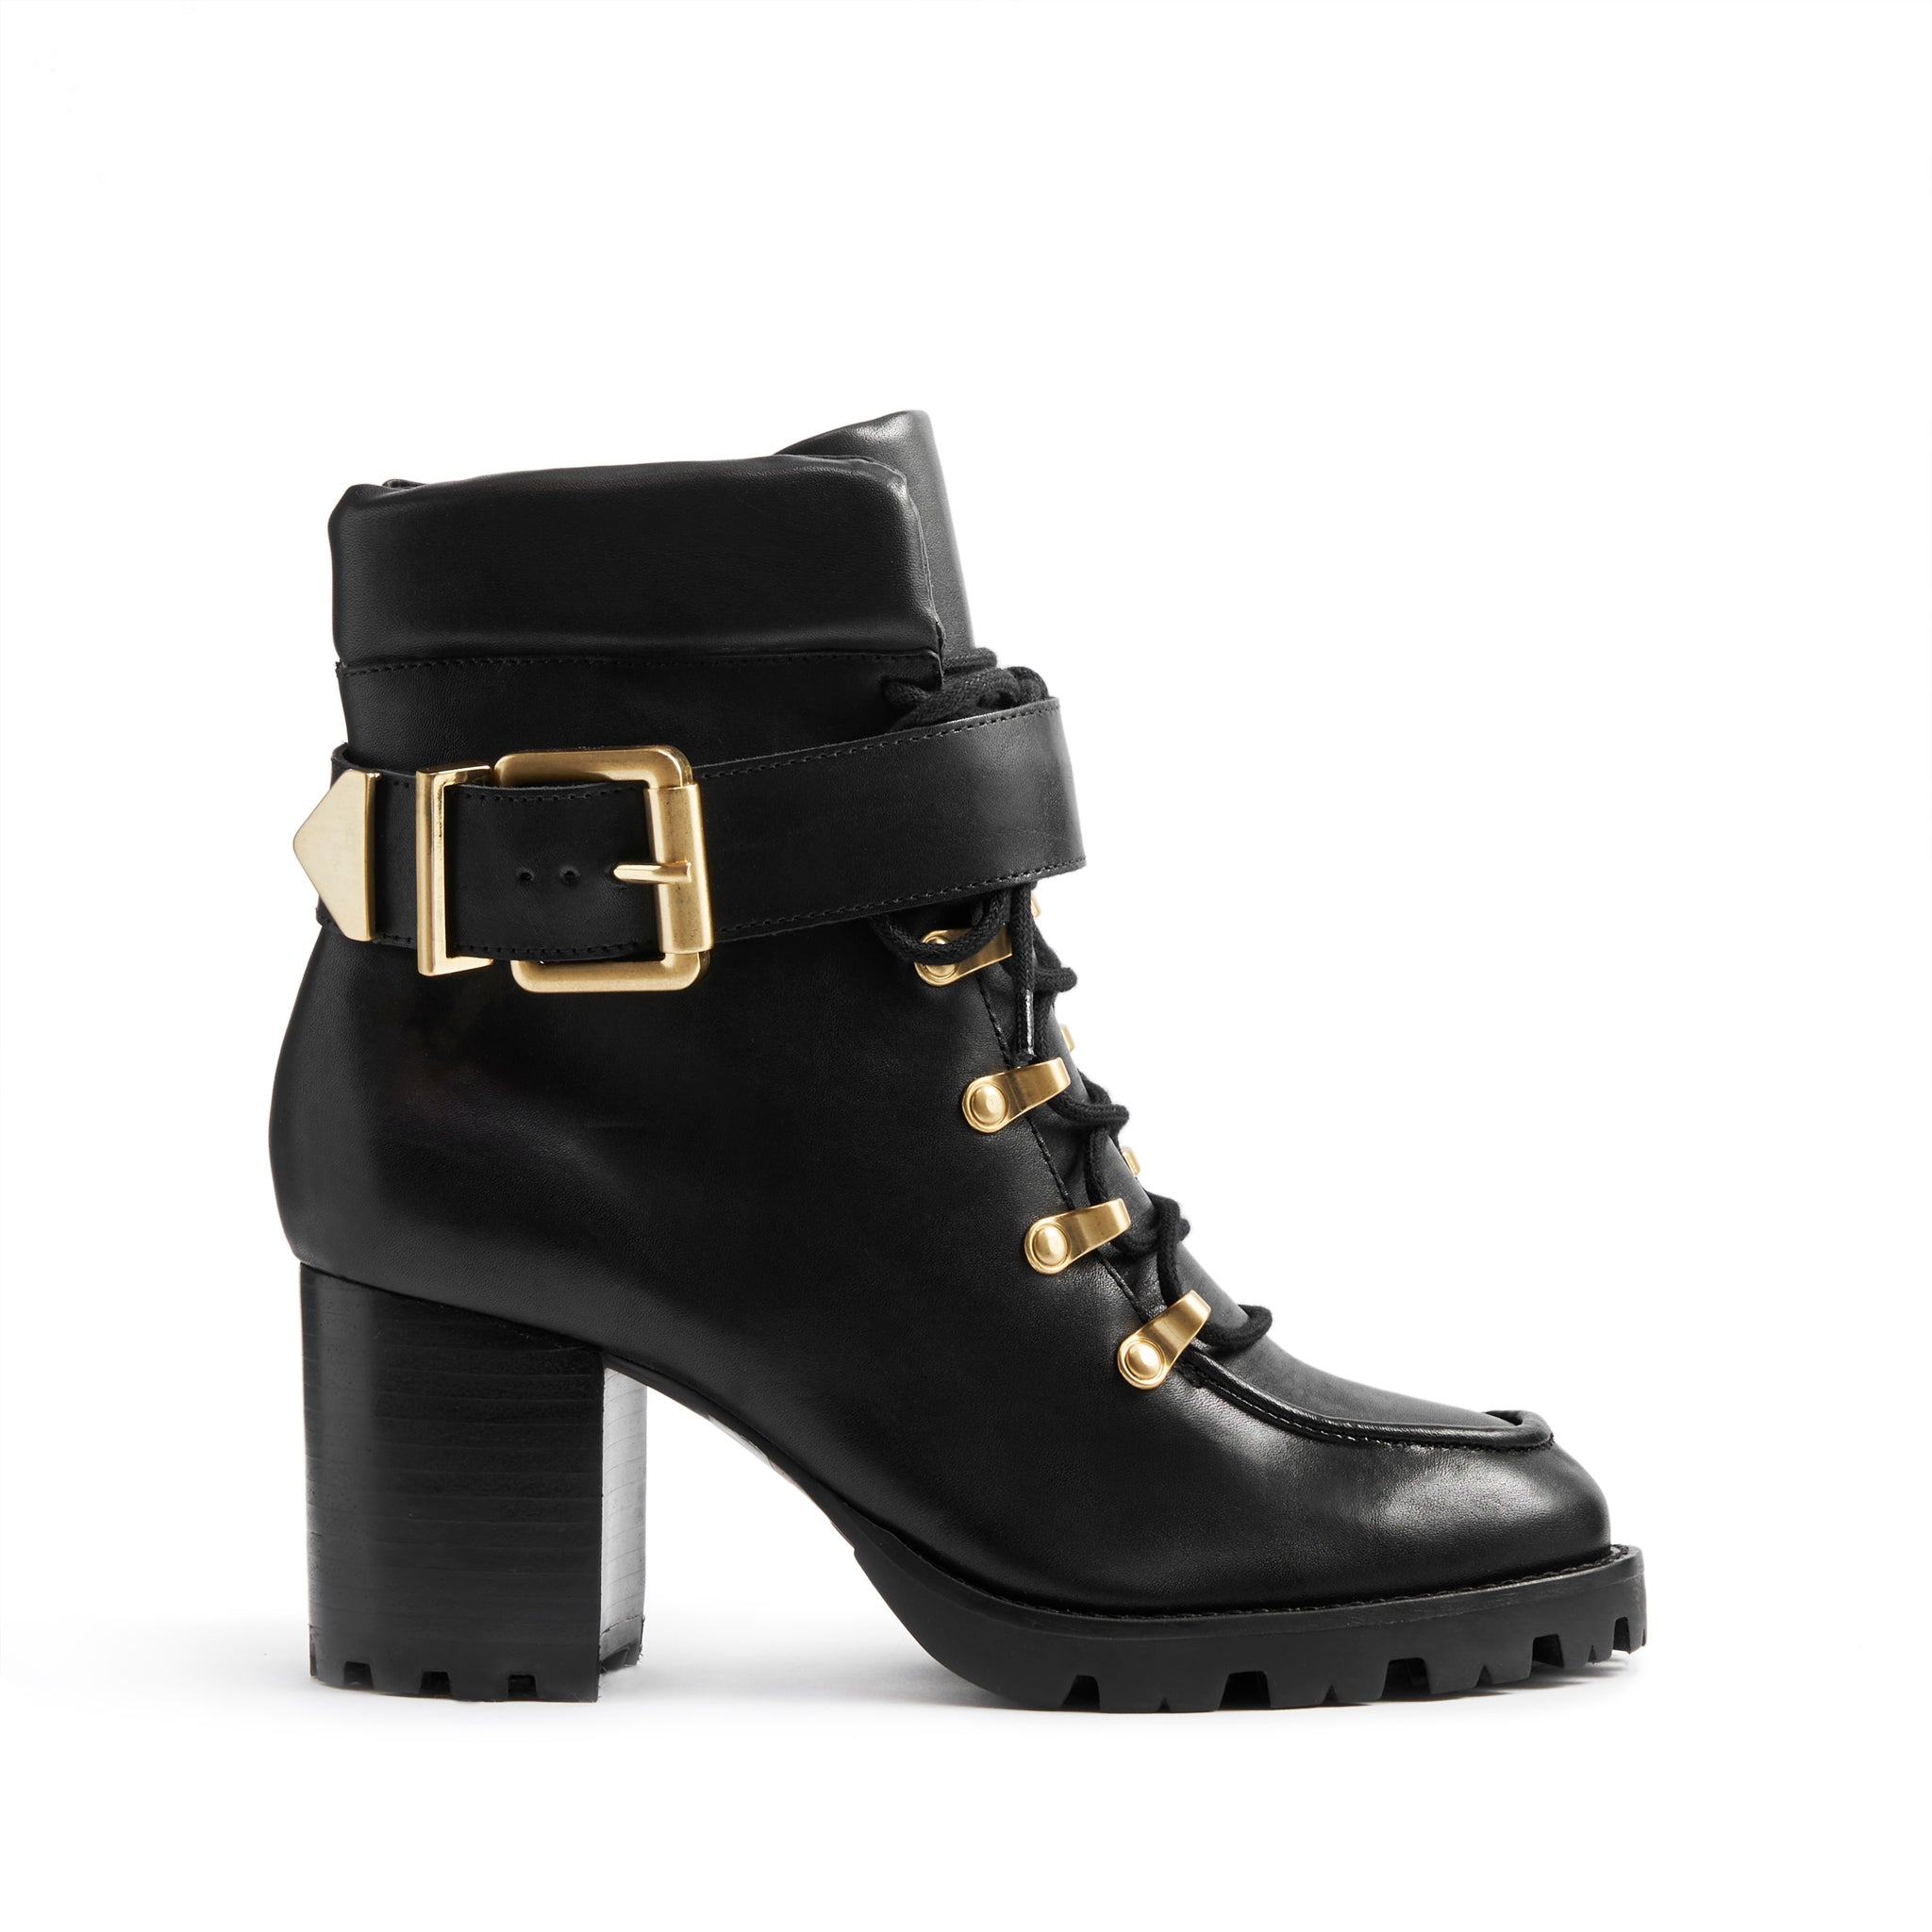 Siggy Booties Black Leather